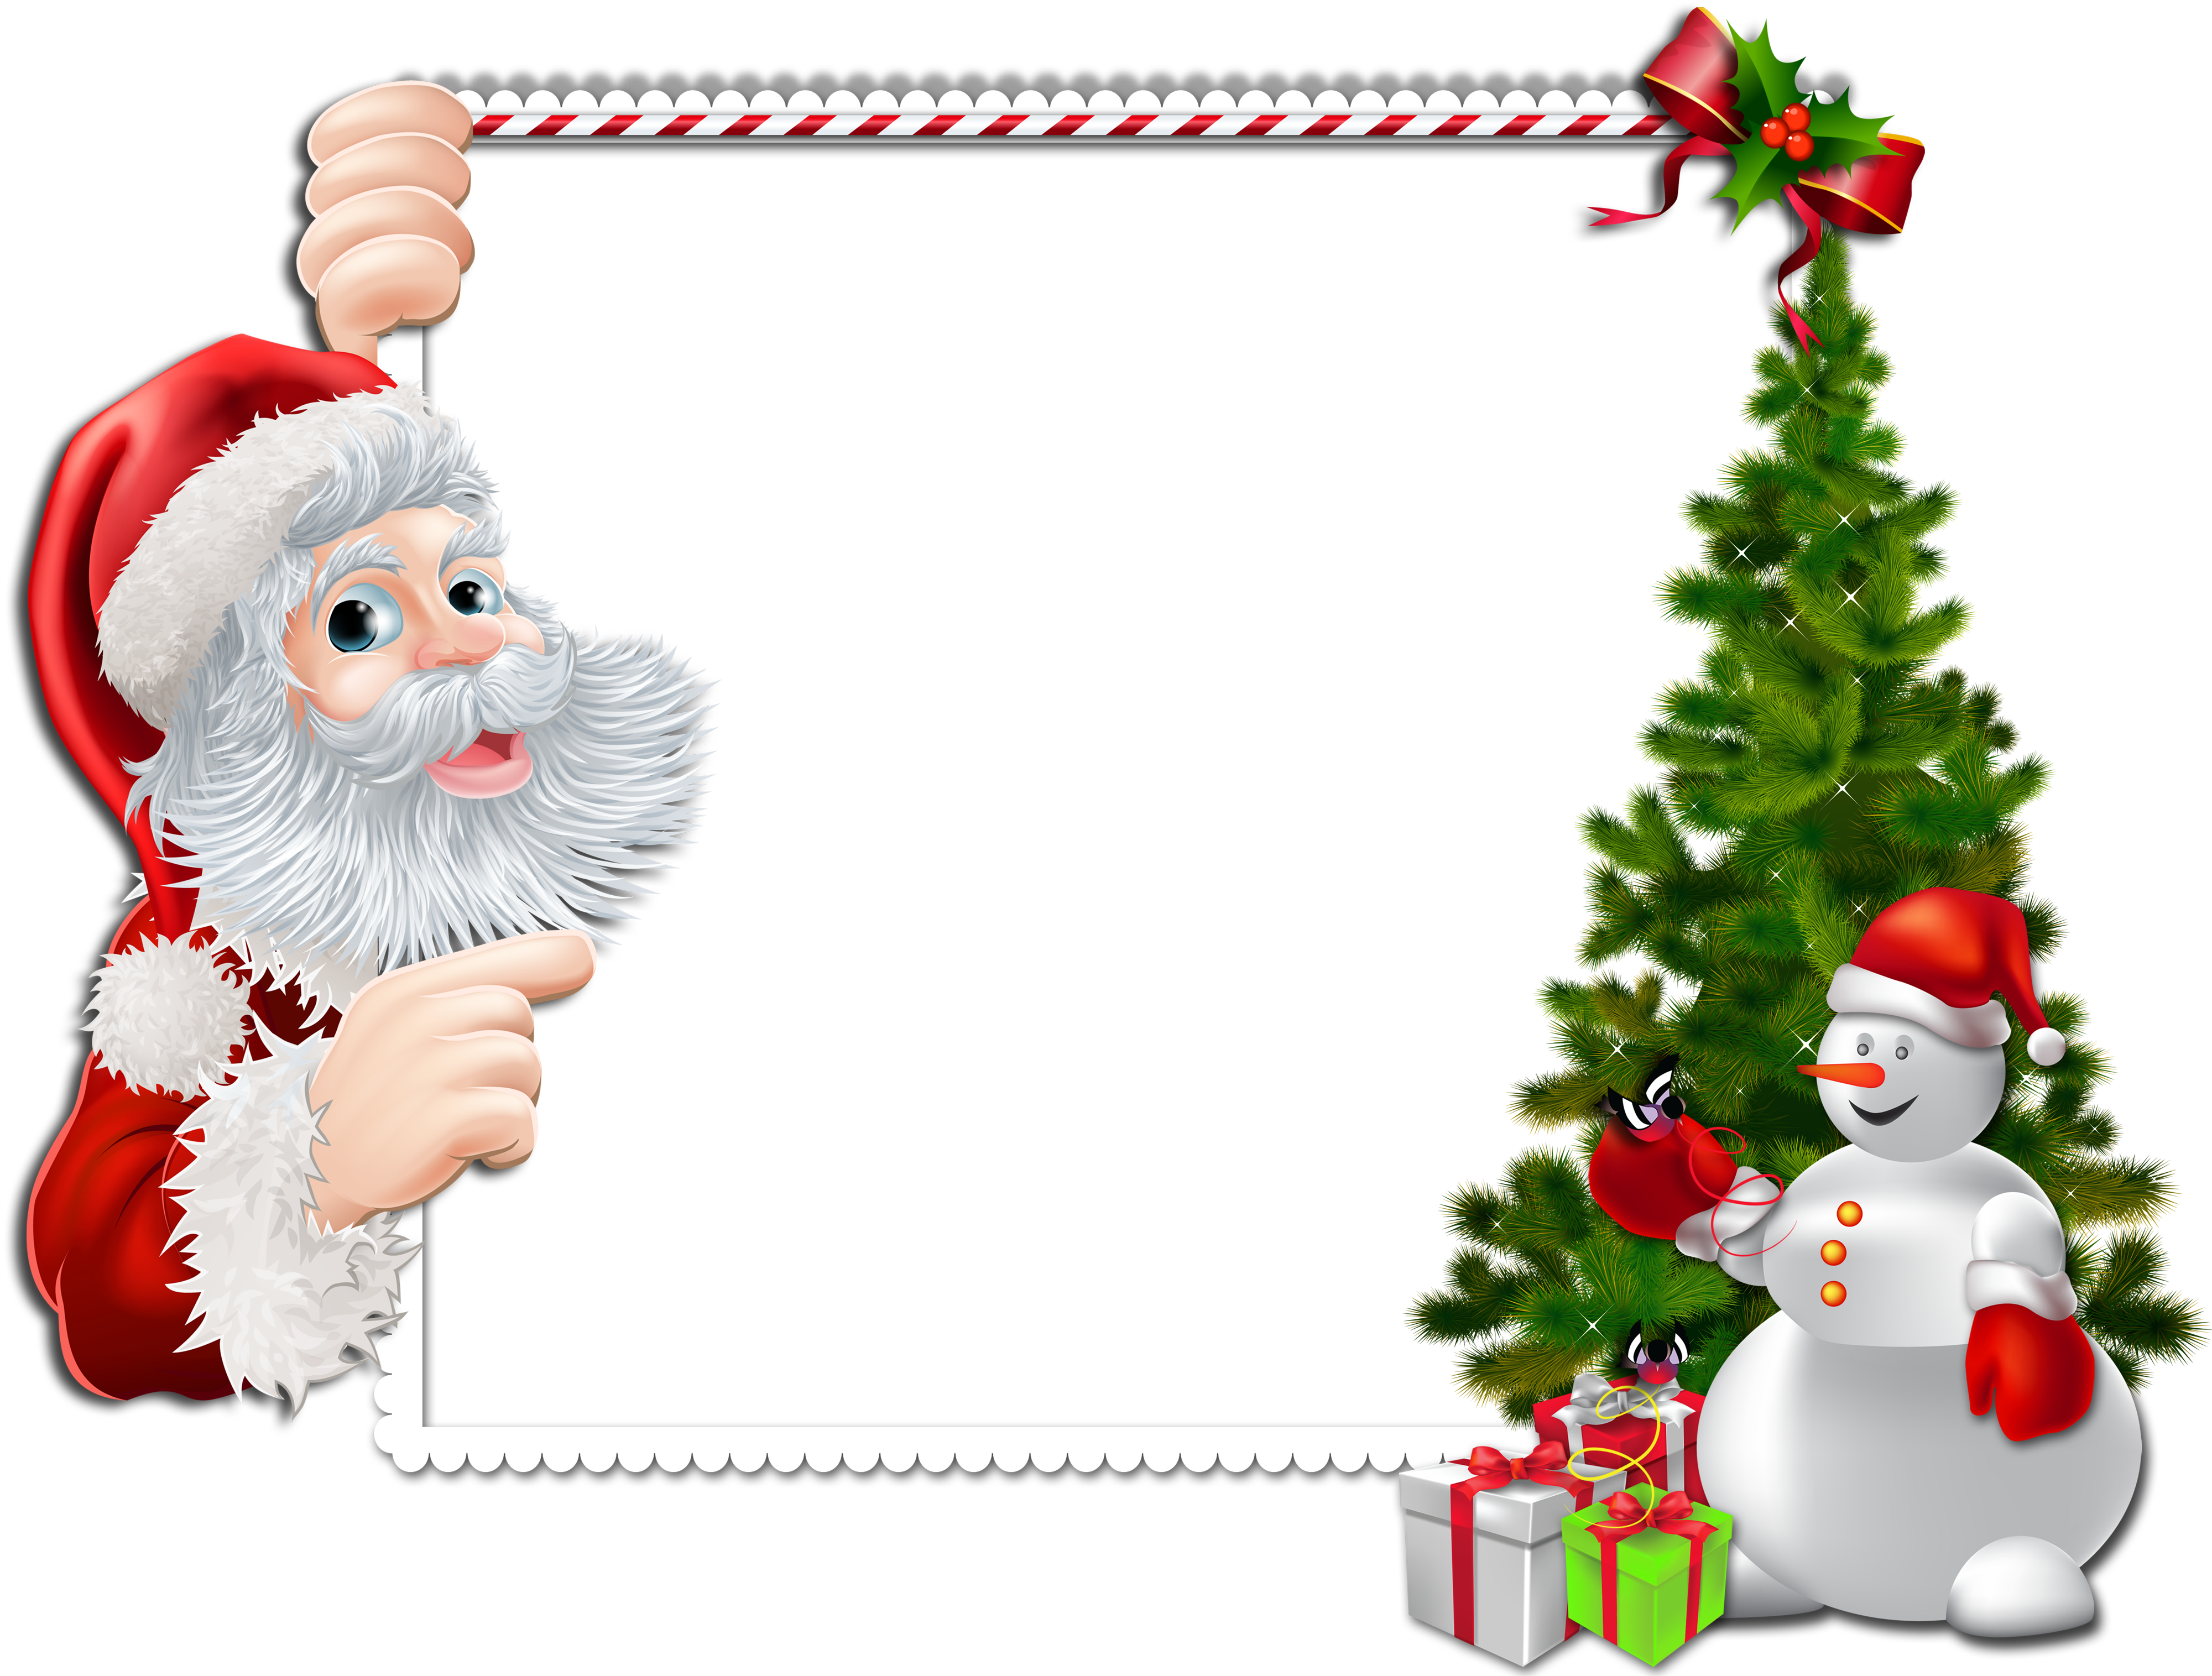 Large Christmas PNG Frame with Santa and Snowman.